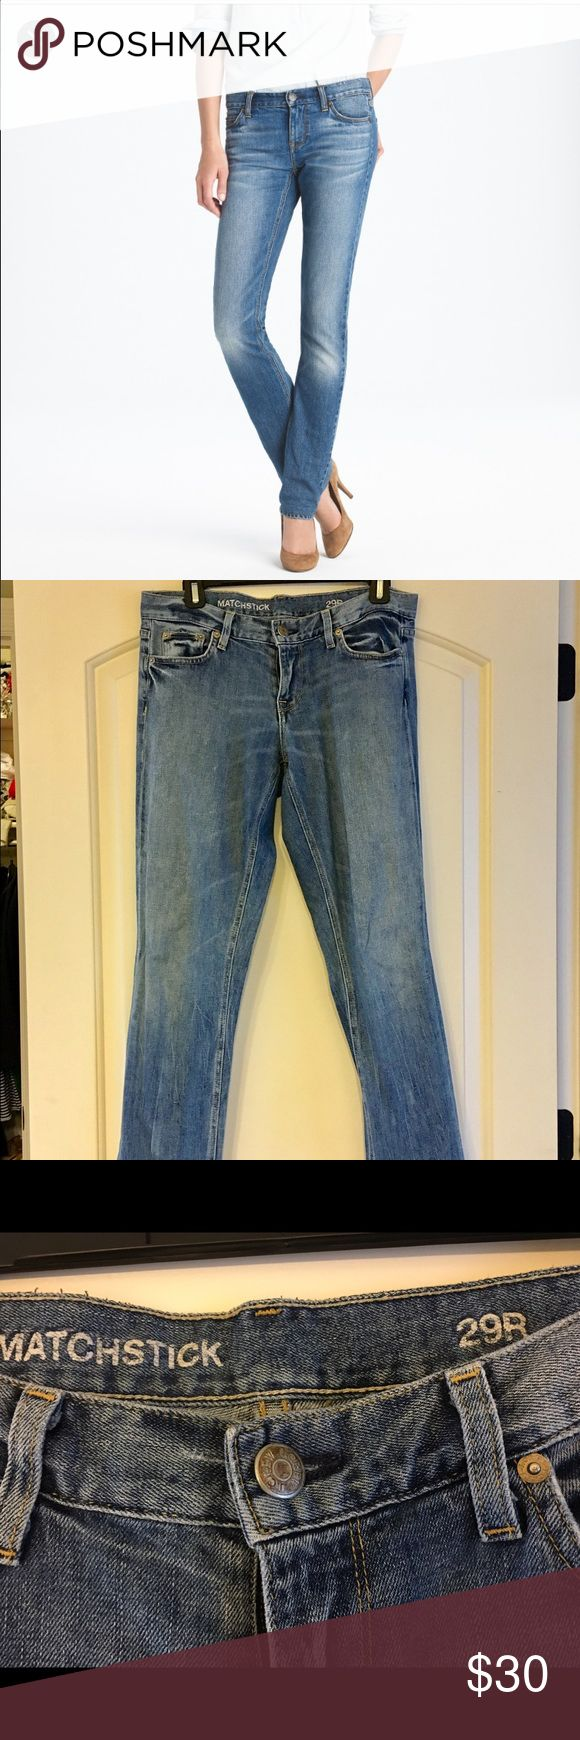 Jcrew Matchstick Jeans If  straight without being skintight is your thing, then our matchstick jean is for you. It's also crafted in premium Turkish denim that's not too rigid, thanks to a little bit of stretch for added comfort. Sits above hip.Fitted through hip and thigh with a straight leg J. Crew Jeans Straight Leg